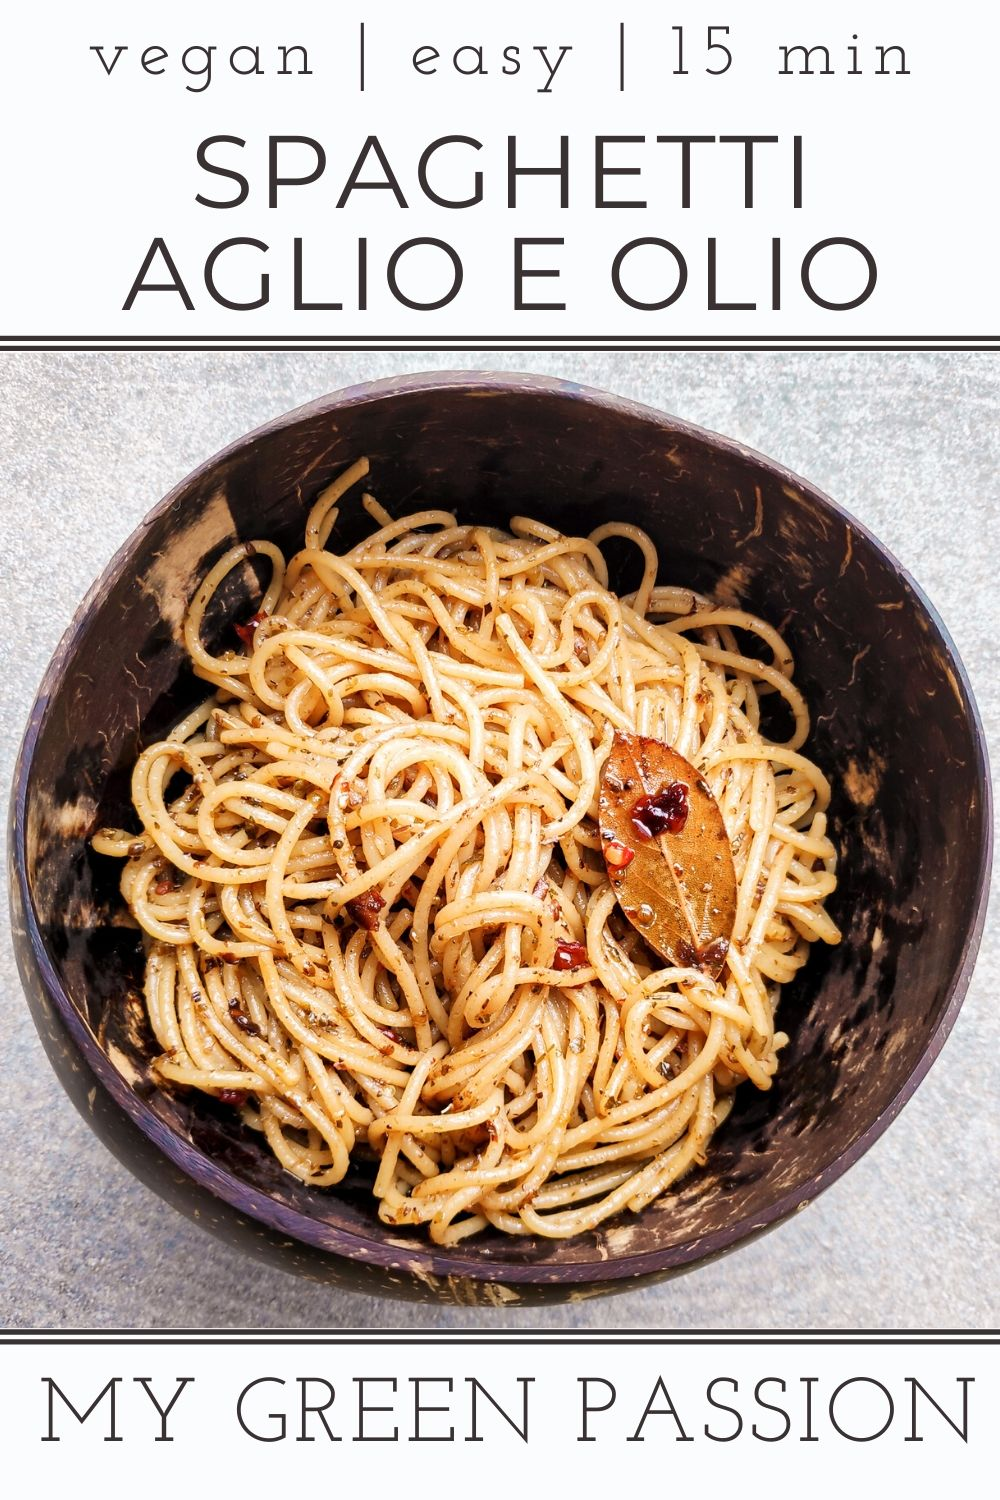 vegan spaghetti aglio e olio easy vegan quick 15 minute recipe